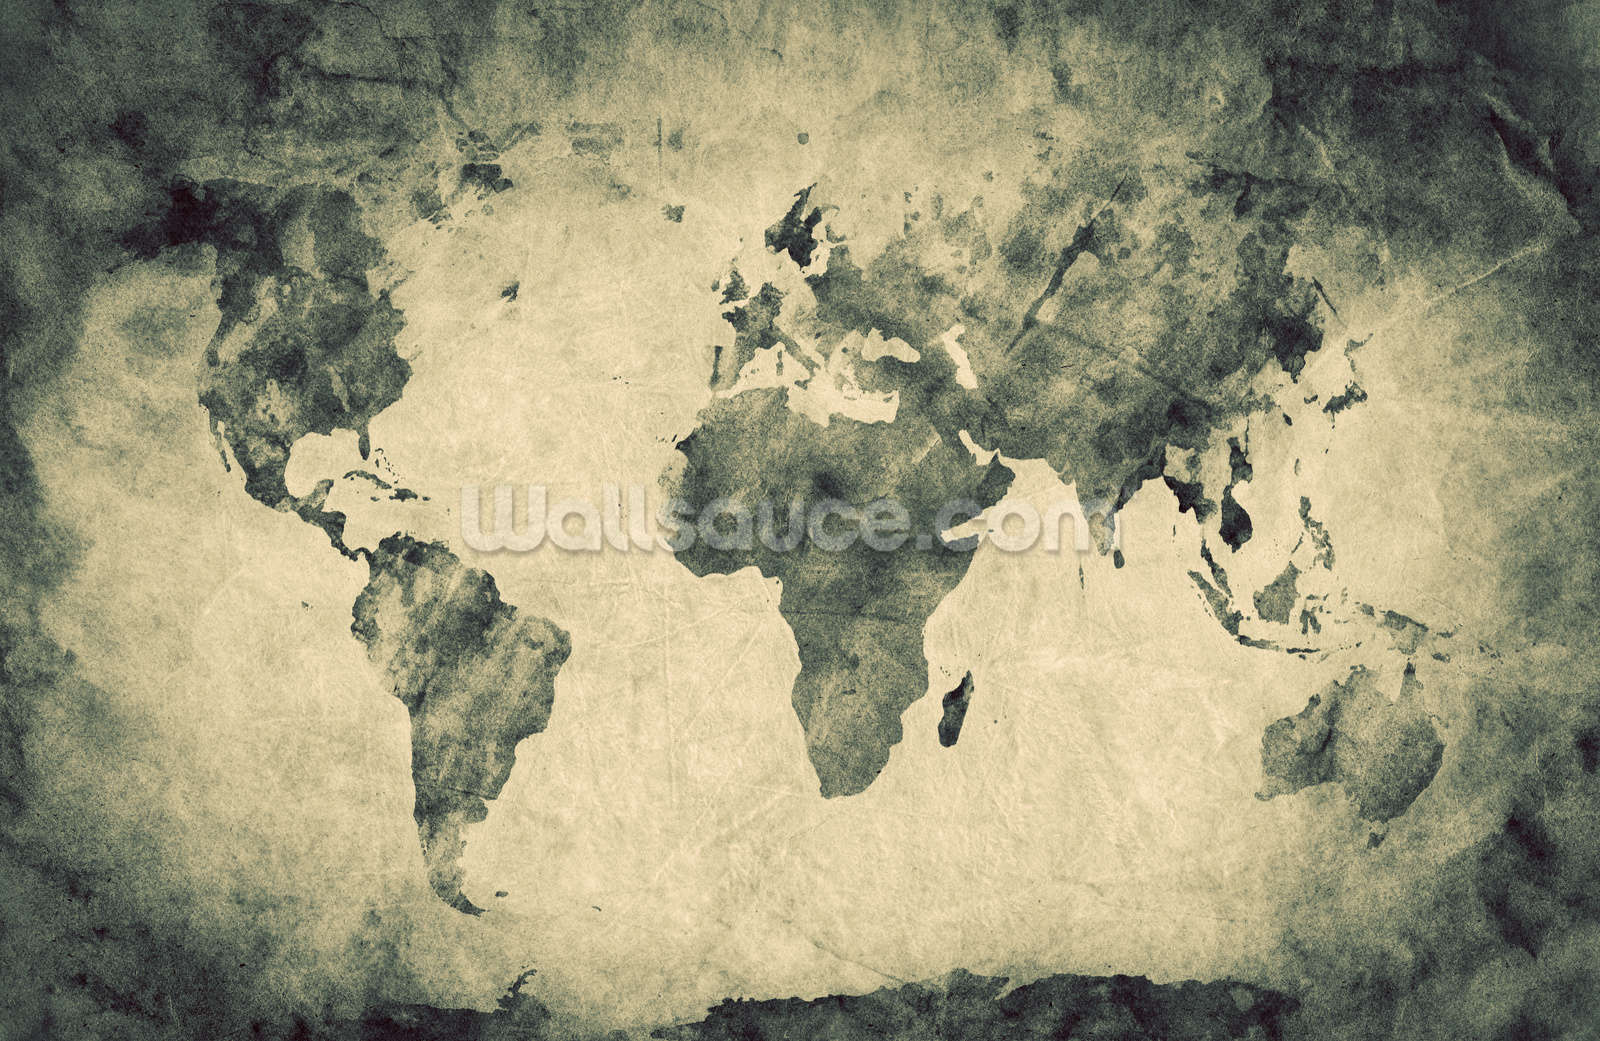 Ancient world map sketch wallpaper wall mural wallsauce new zealand ancient world map sketch wallpaper mural gumiabroncs